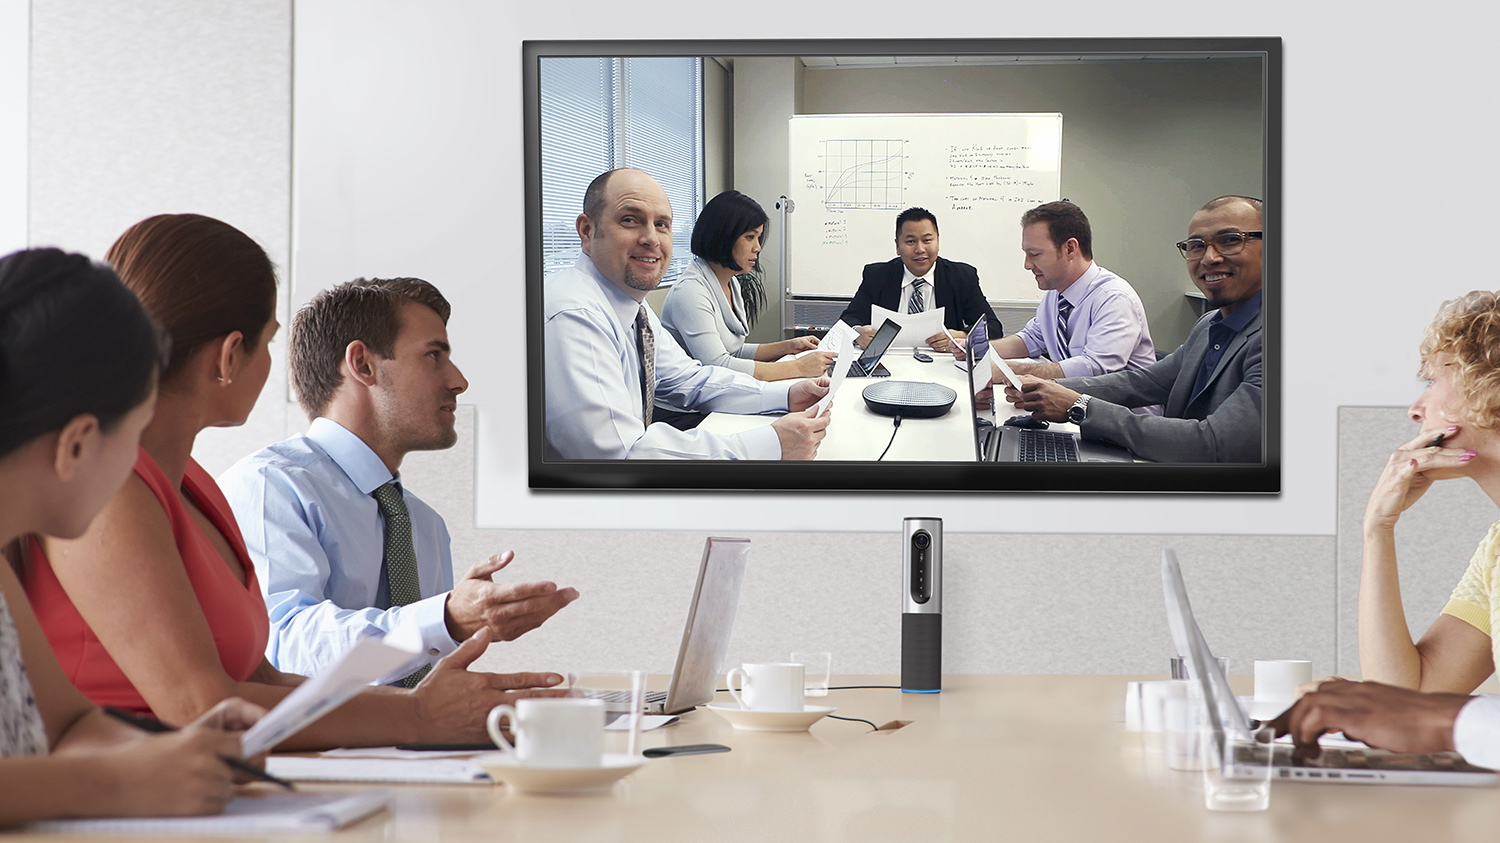 ConferenceCam Connect transforms any room into a video conference ...